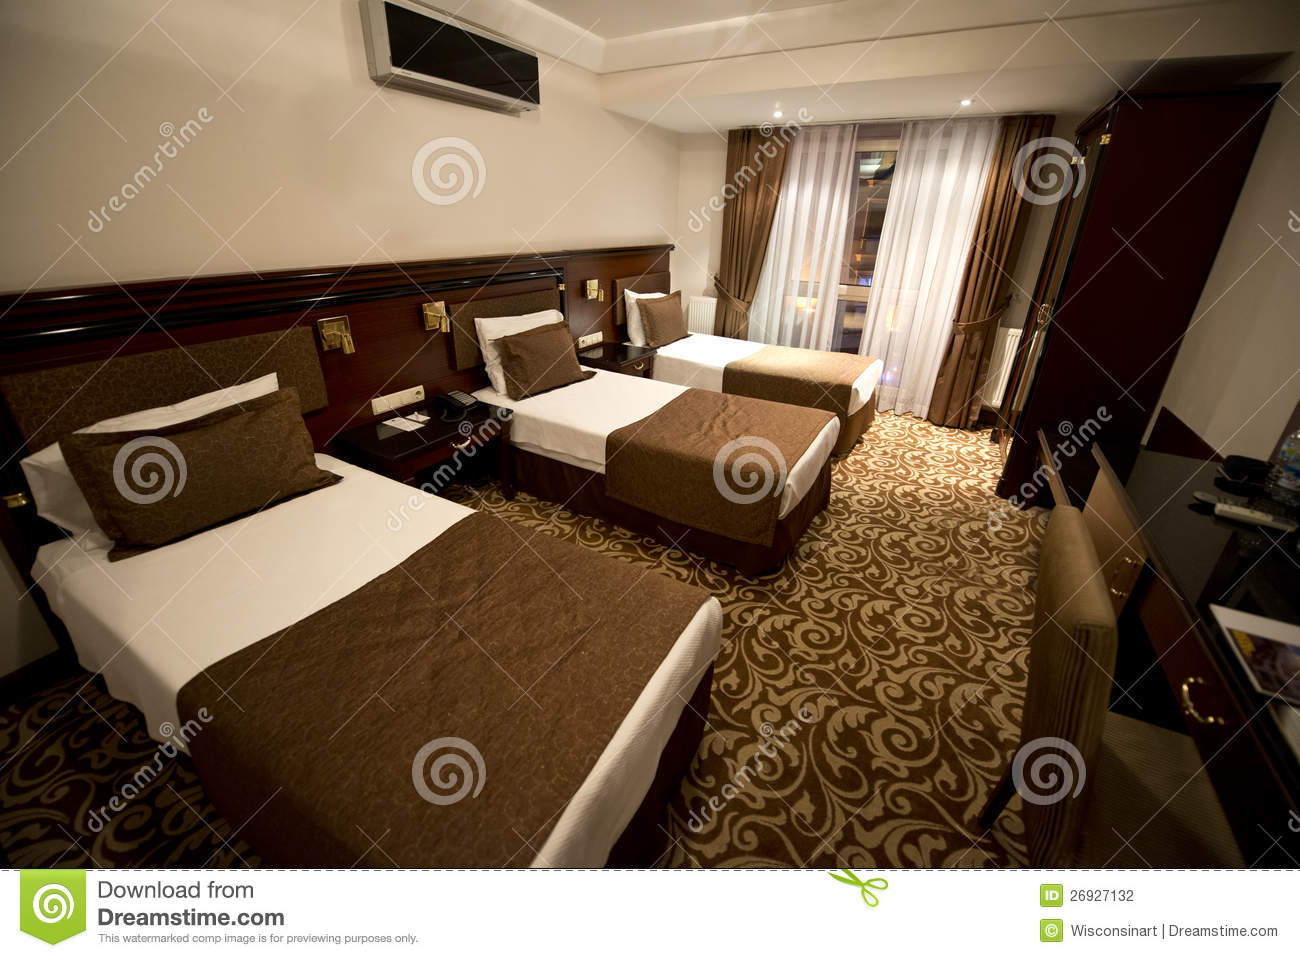 Small hotel room with three single beds stock photography for Small lounge suites small rooms